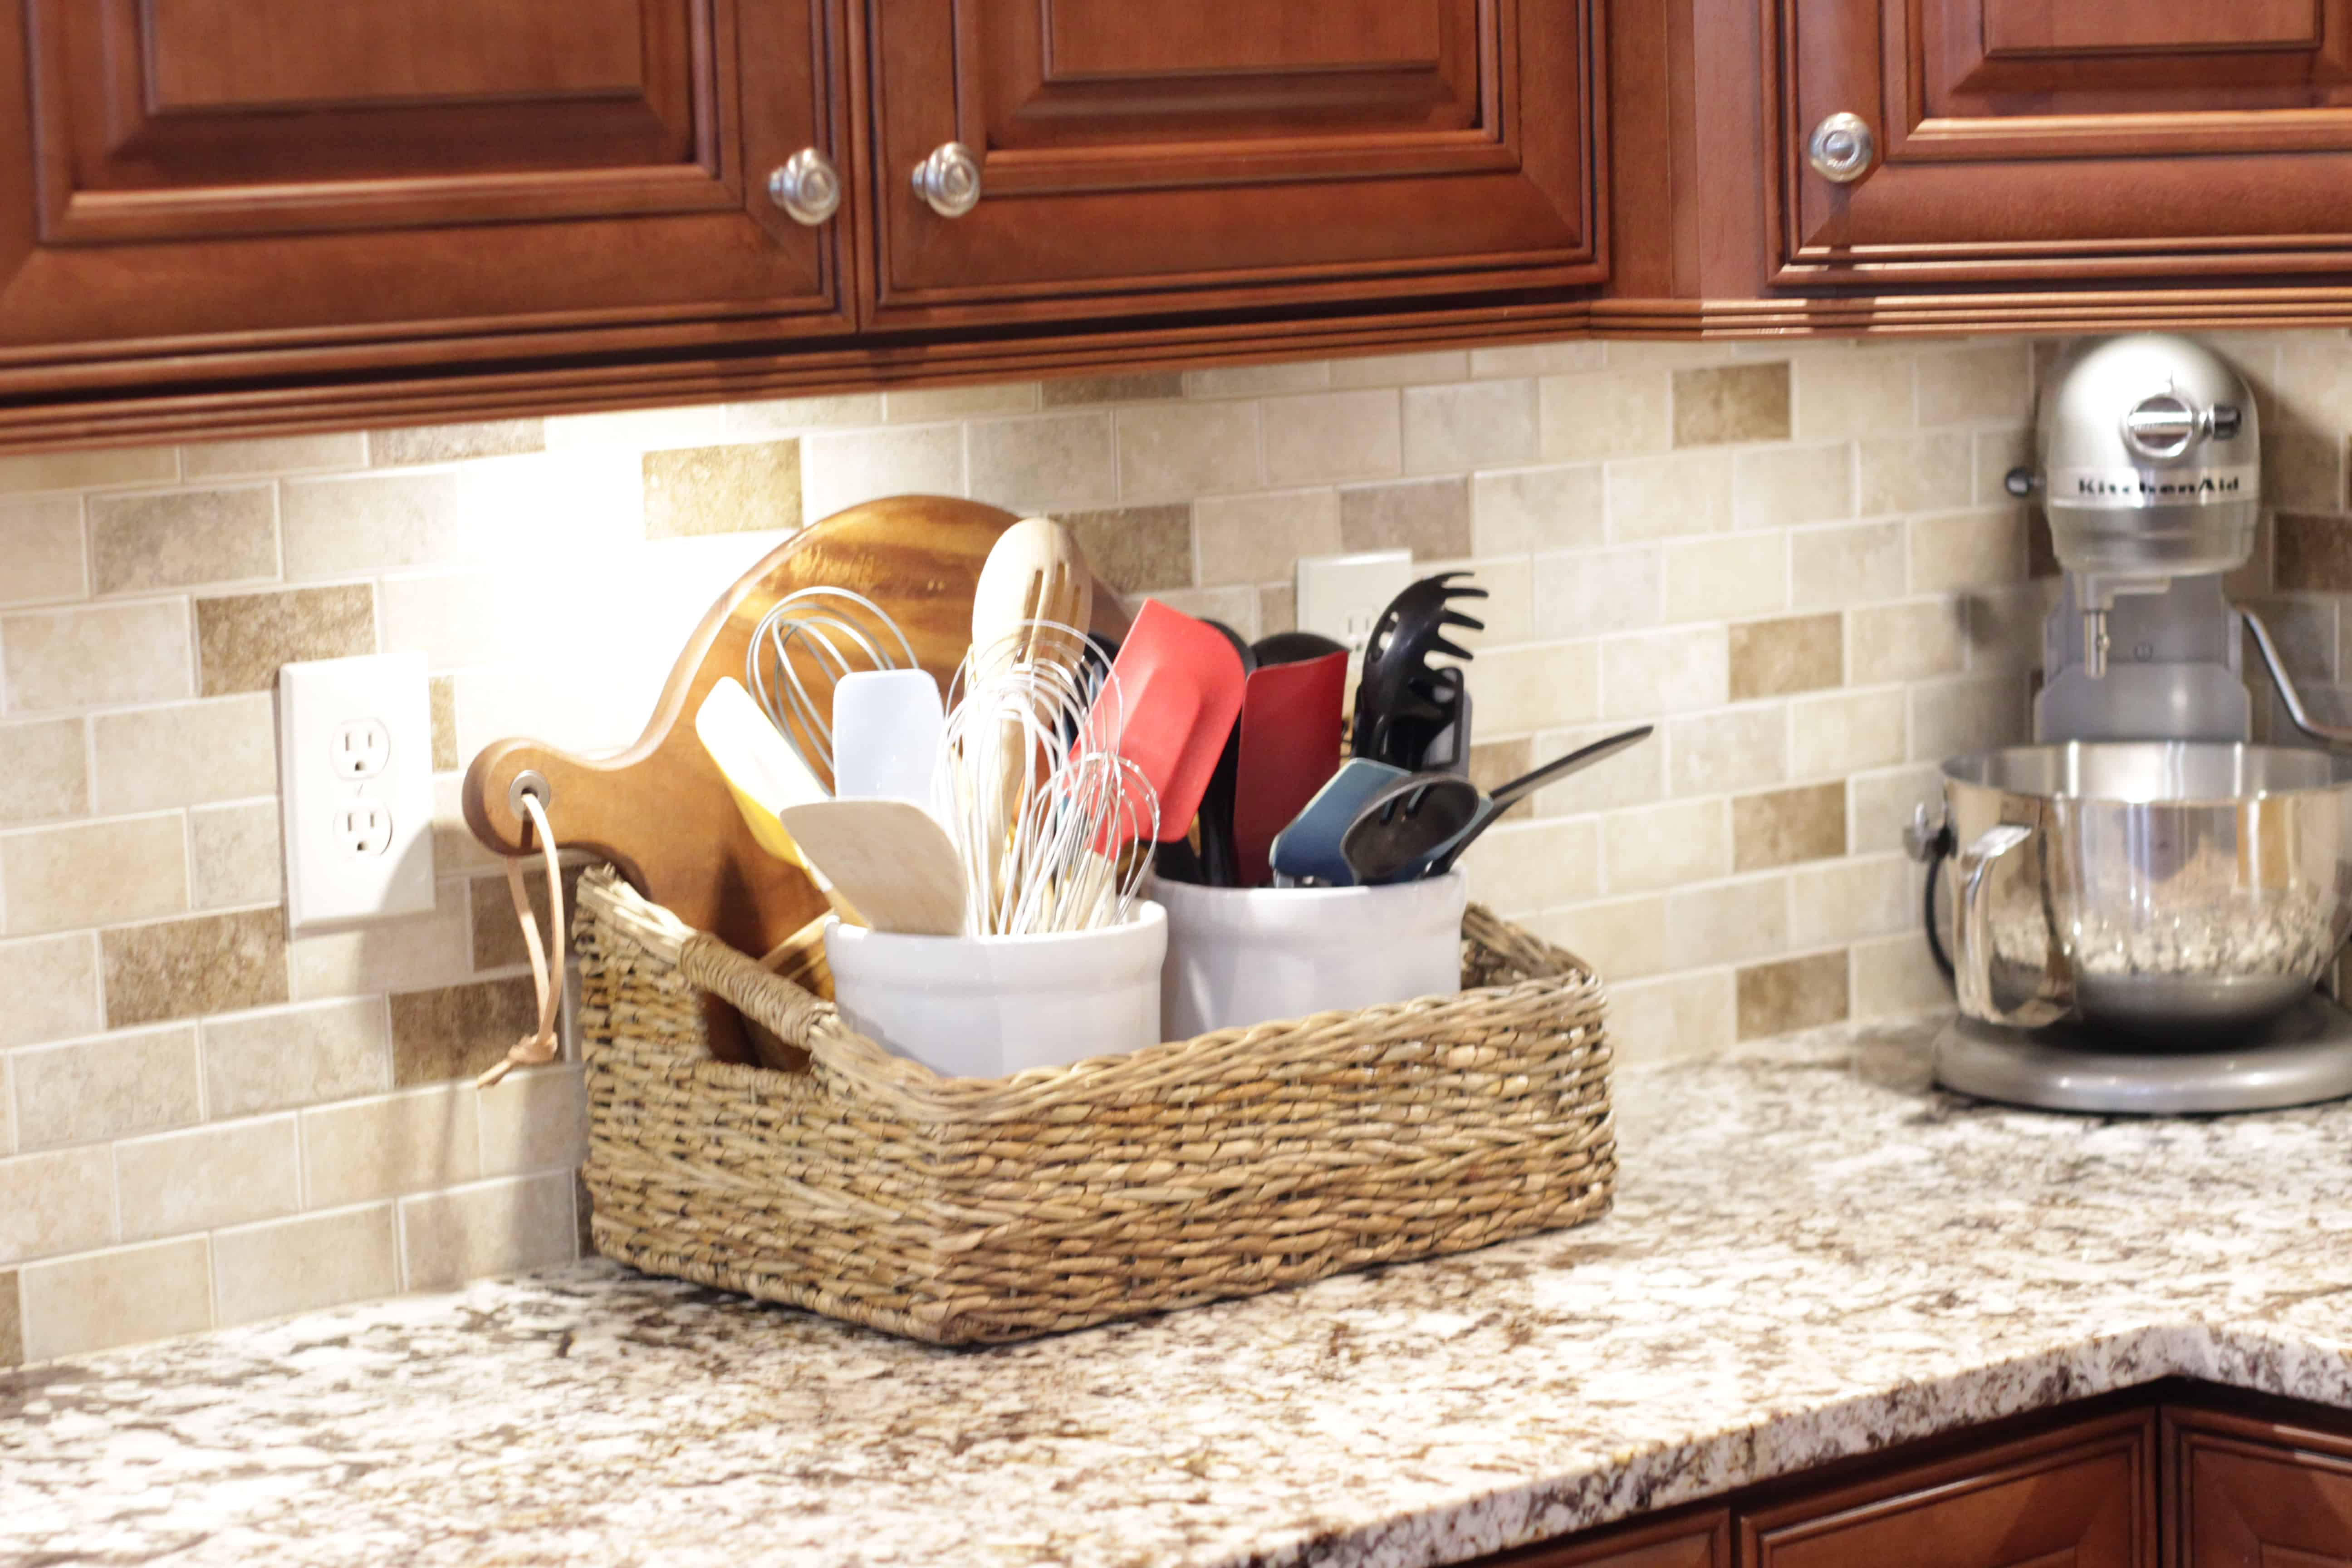 Use Baskets To Organize Your Small Kitchen Through My Front Porch